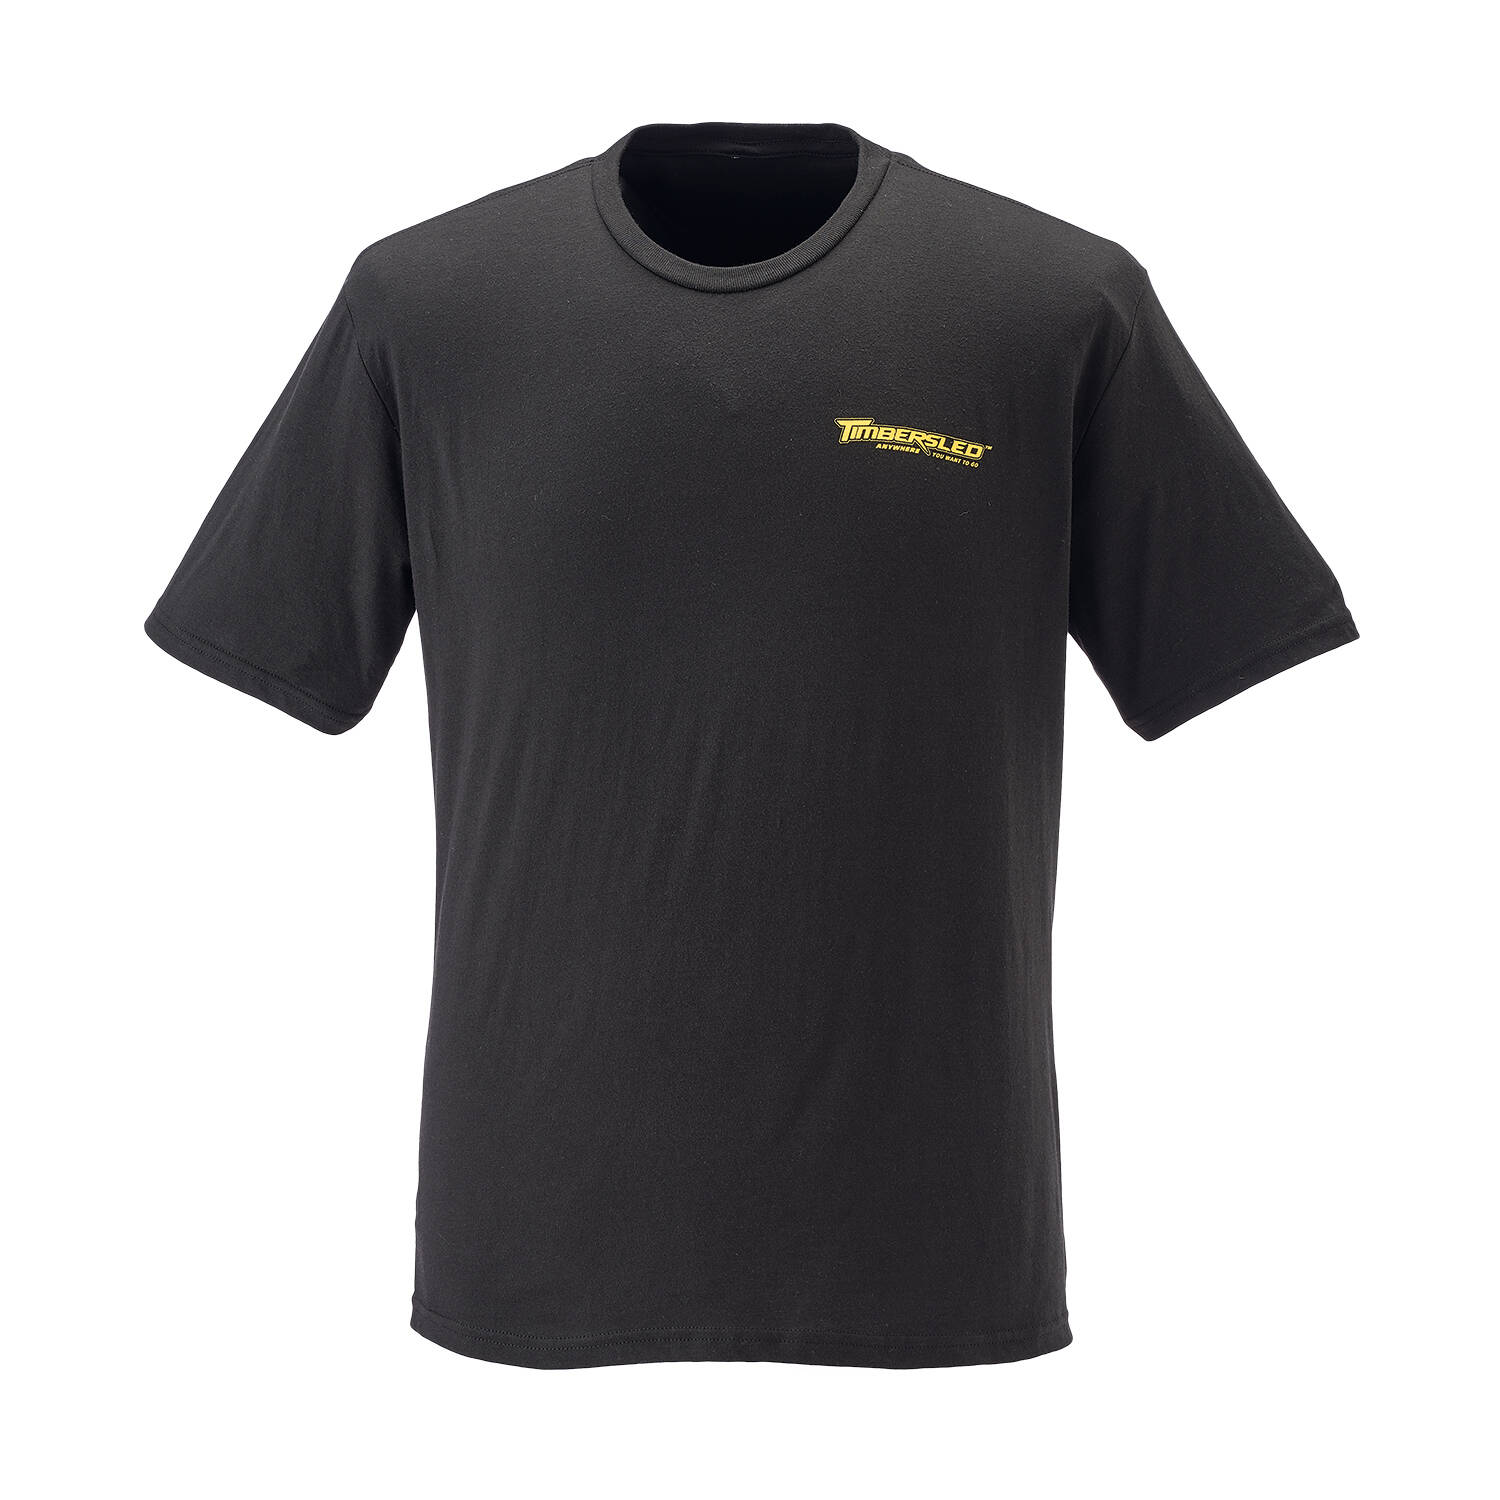 Men's Graphic T-Shirt with Timbersled® Logo, Black